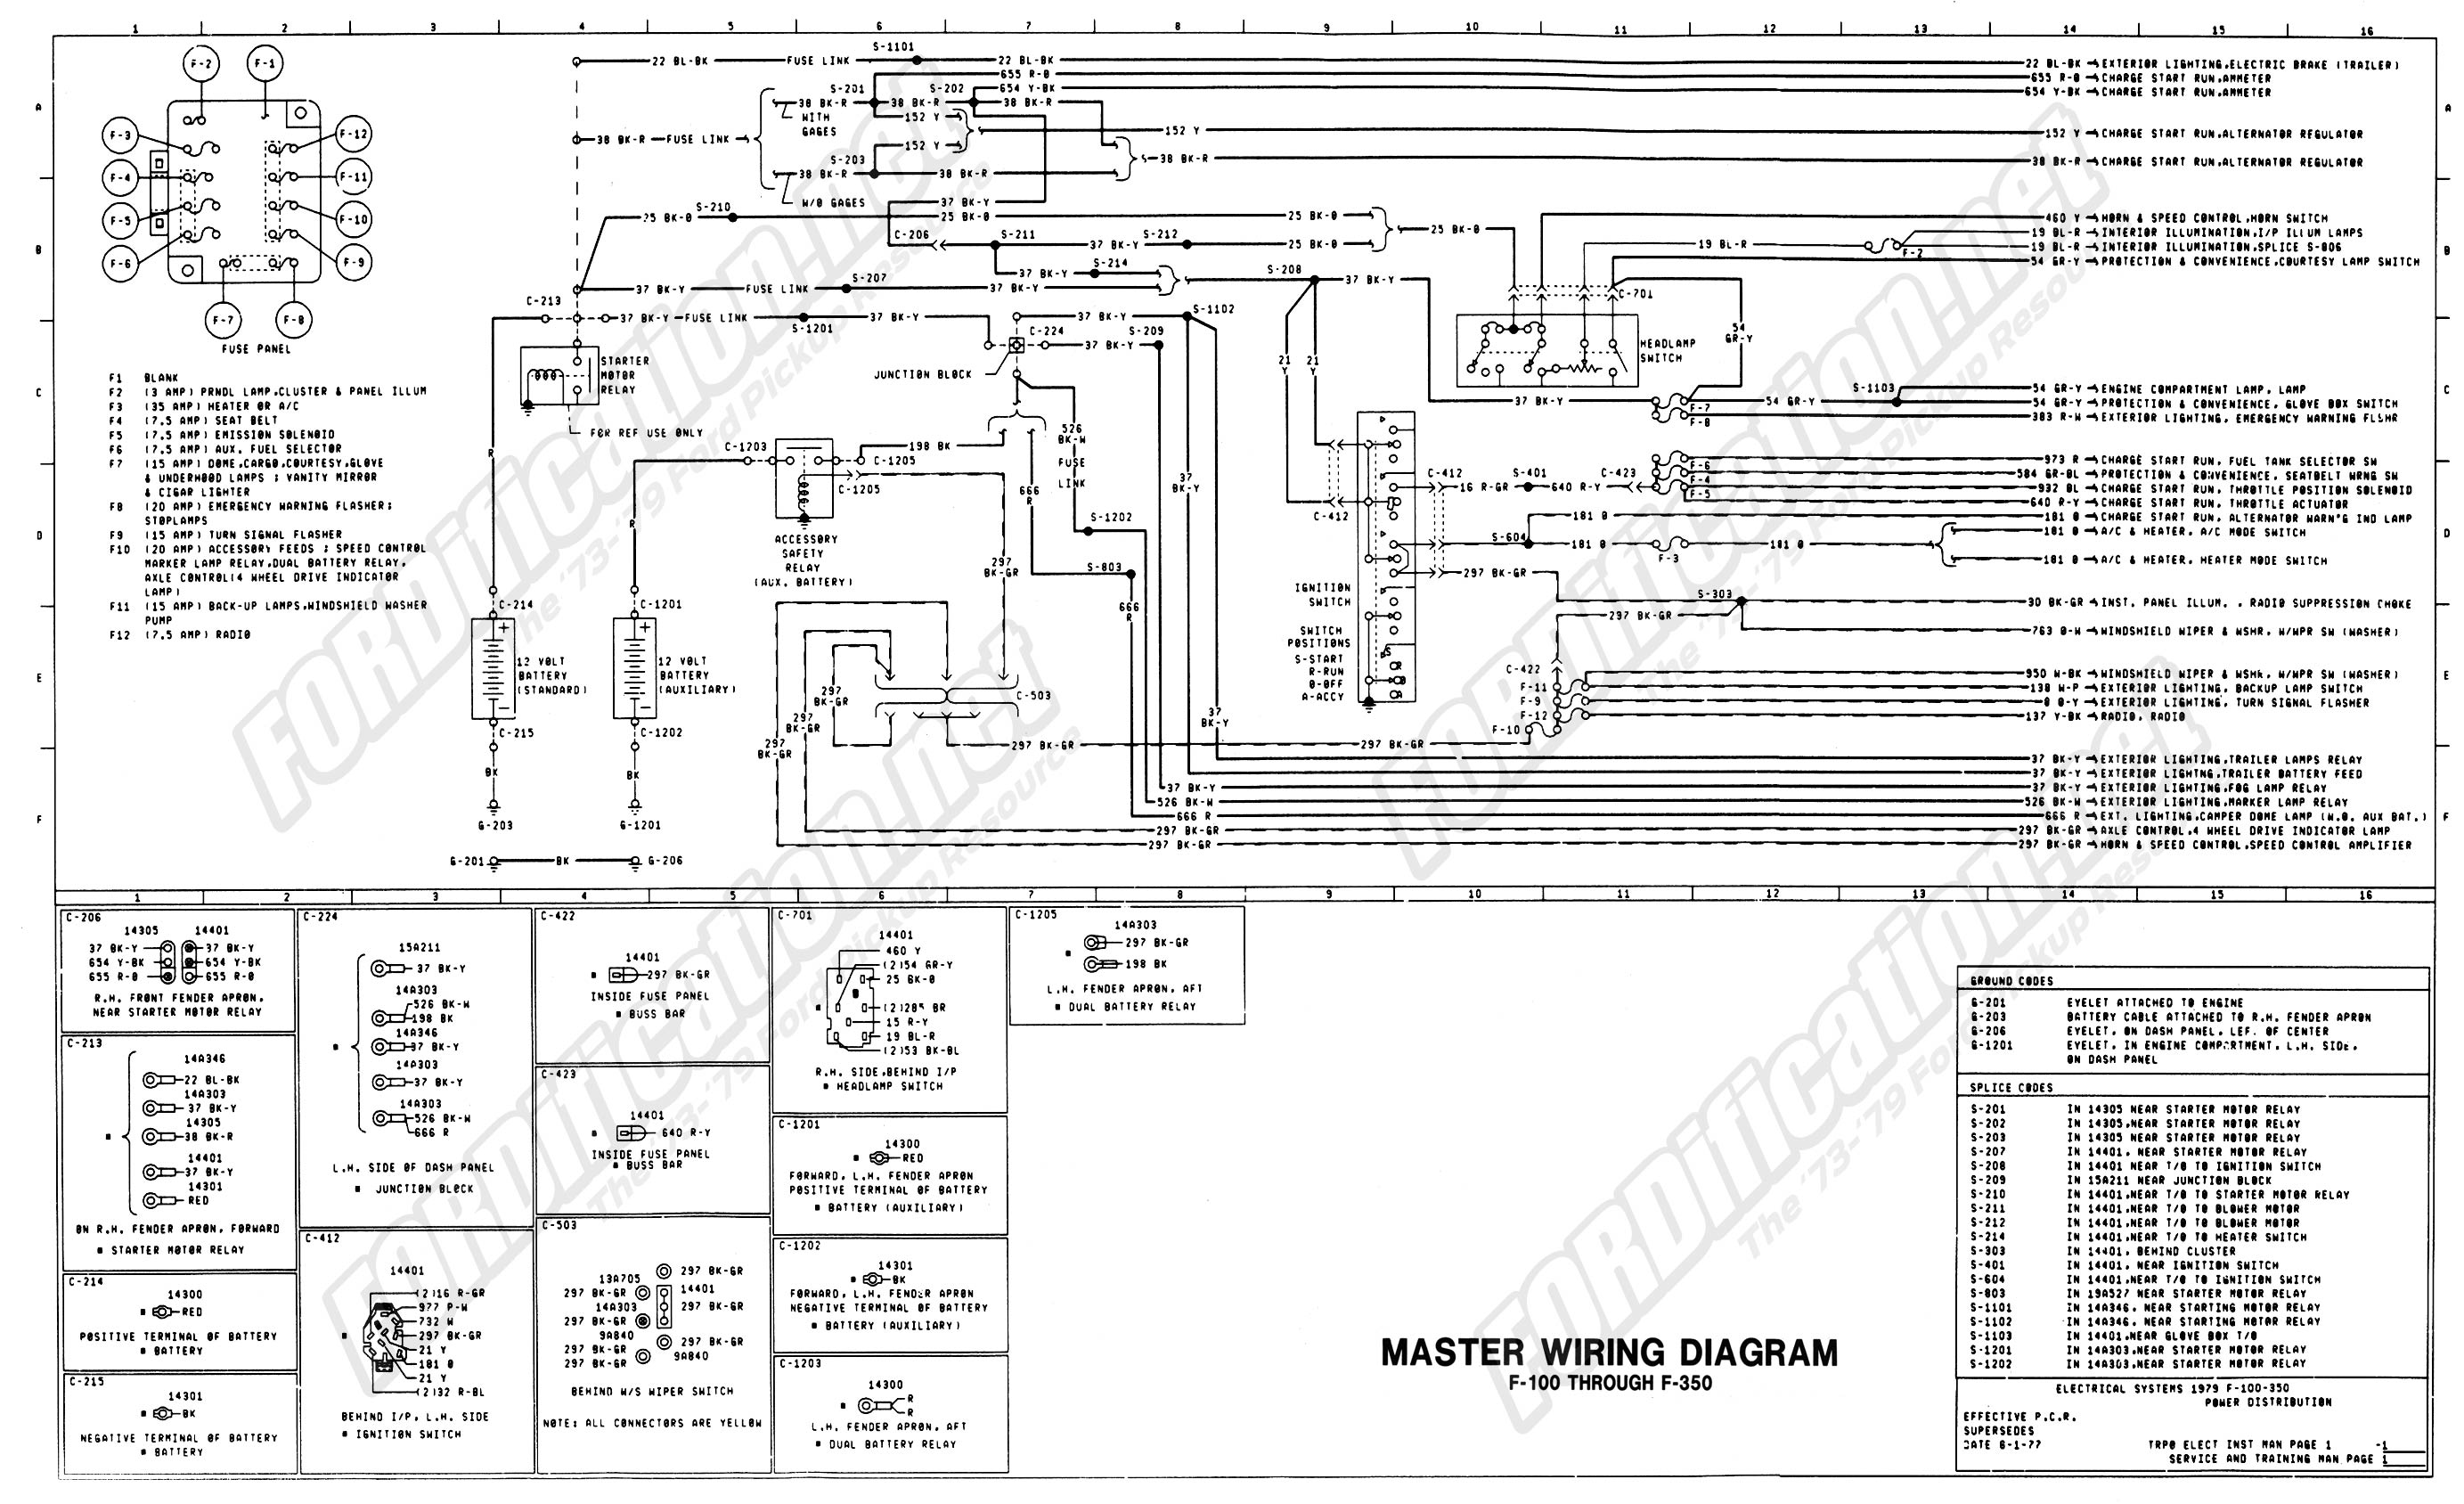 1977 f350 wiring diagram schematics wiring diagrams u2022 rh seniorlivinguniversity co